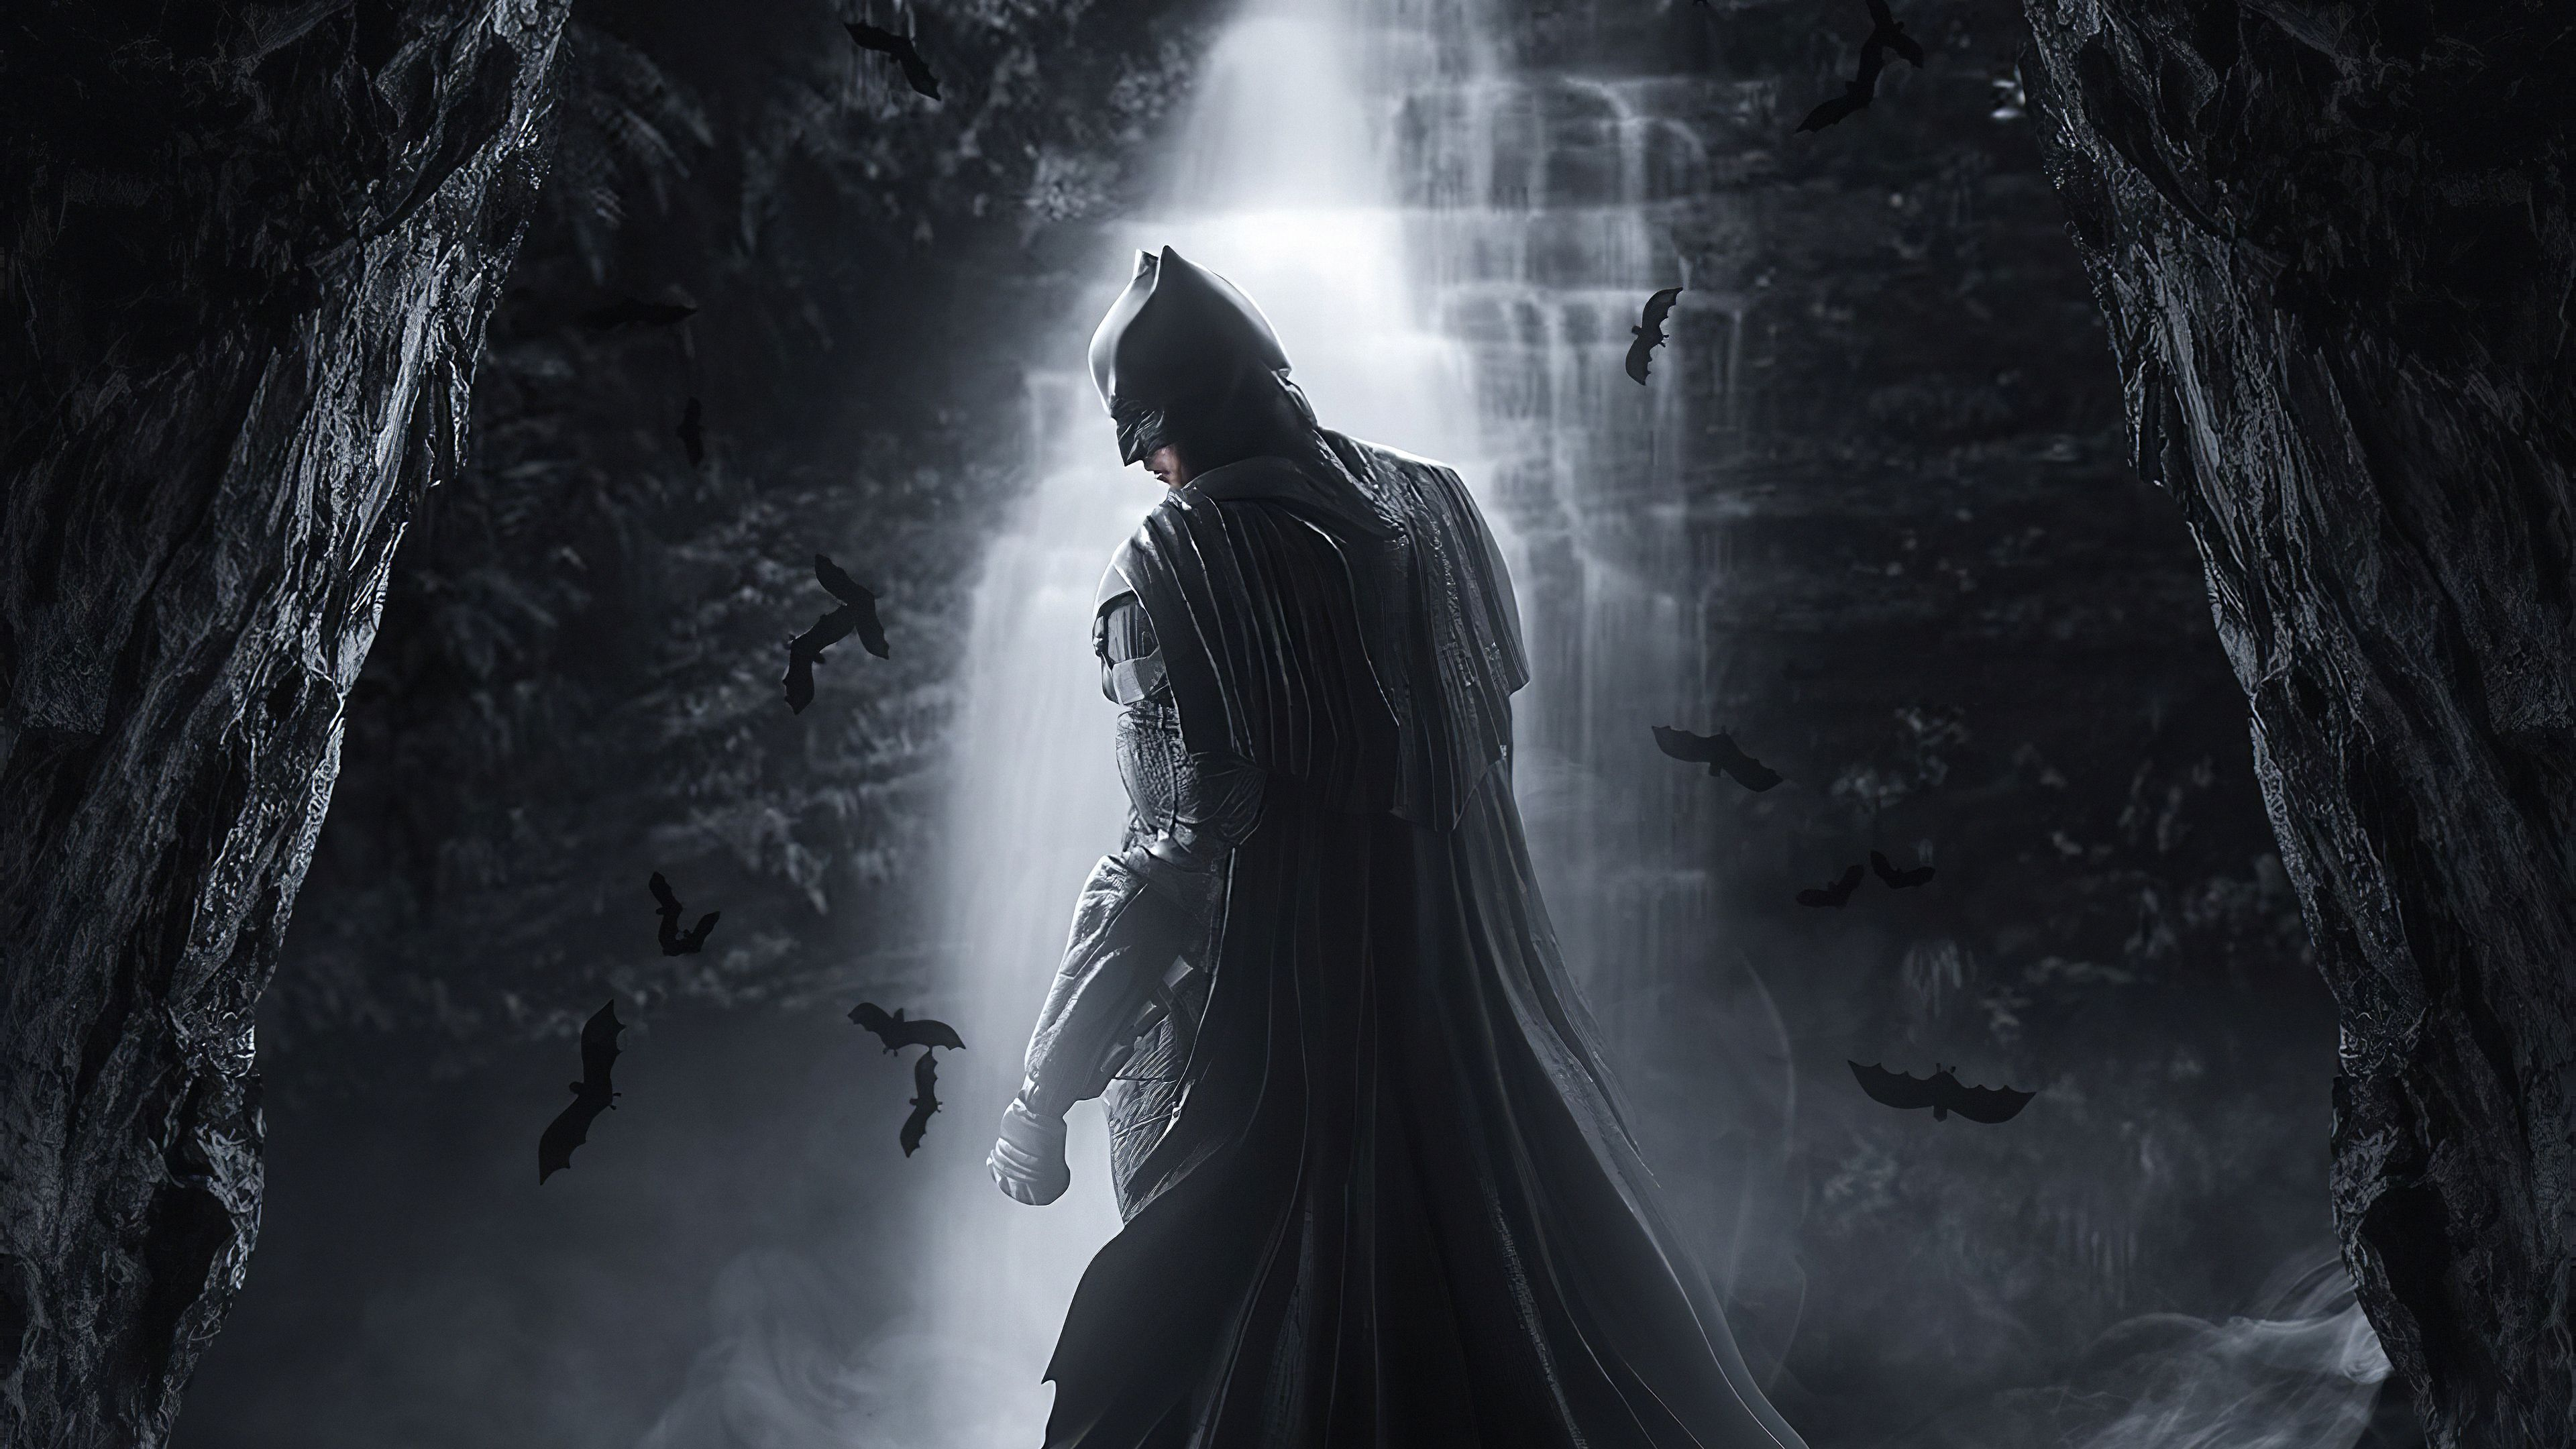 The Batman Dark Knight Wallpaper Batman Wallpaper Batman